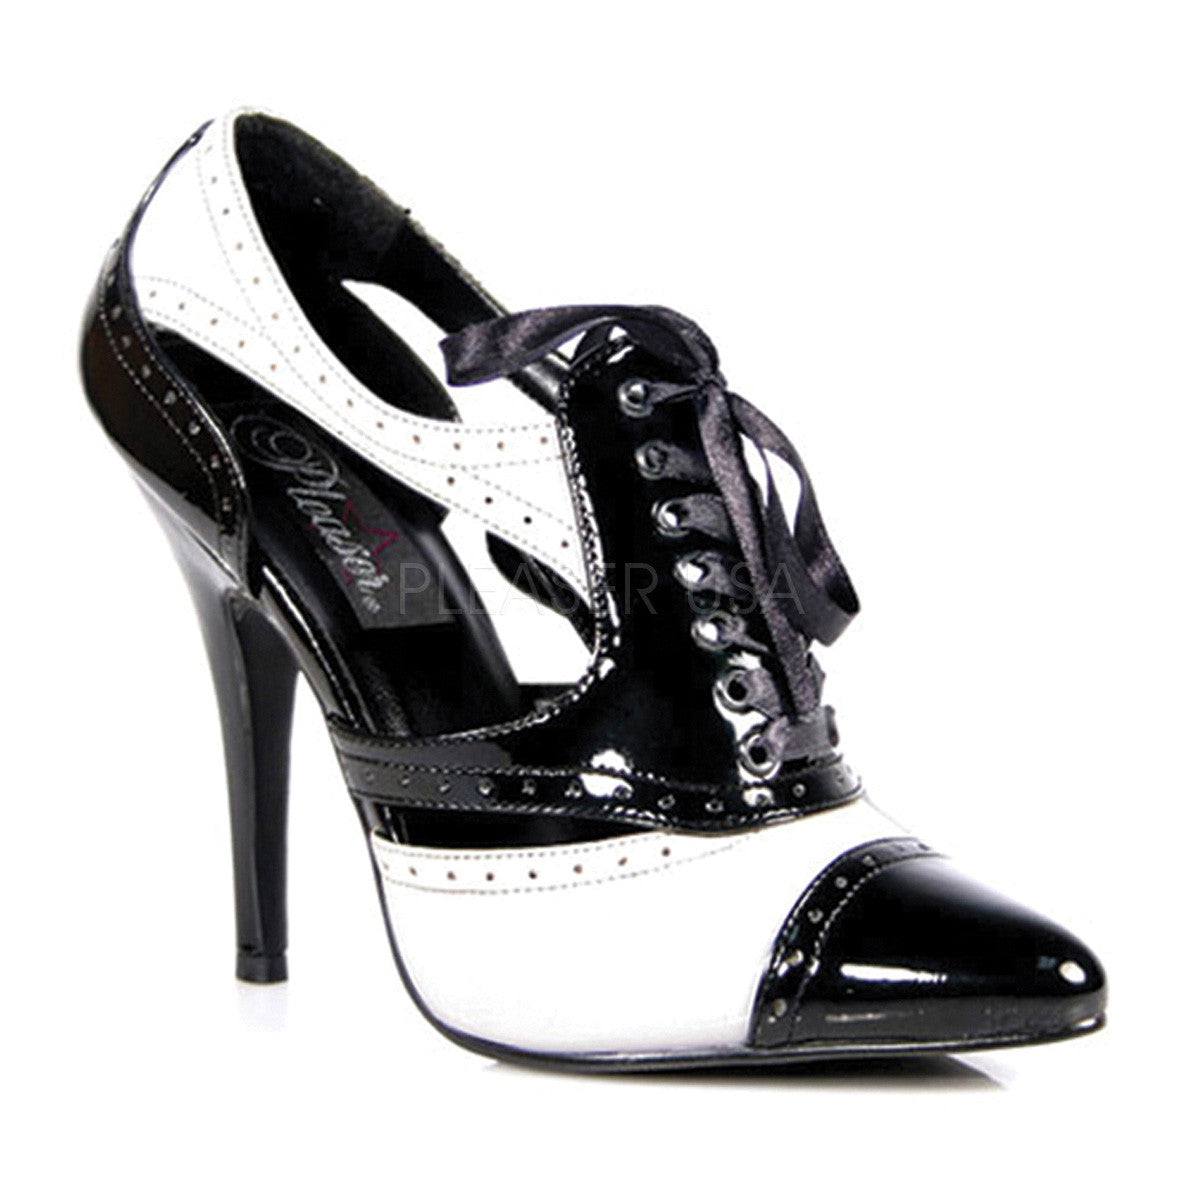 PLEASER SEDUCE-458 Black-White Pat Pumps - Shoecup.com